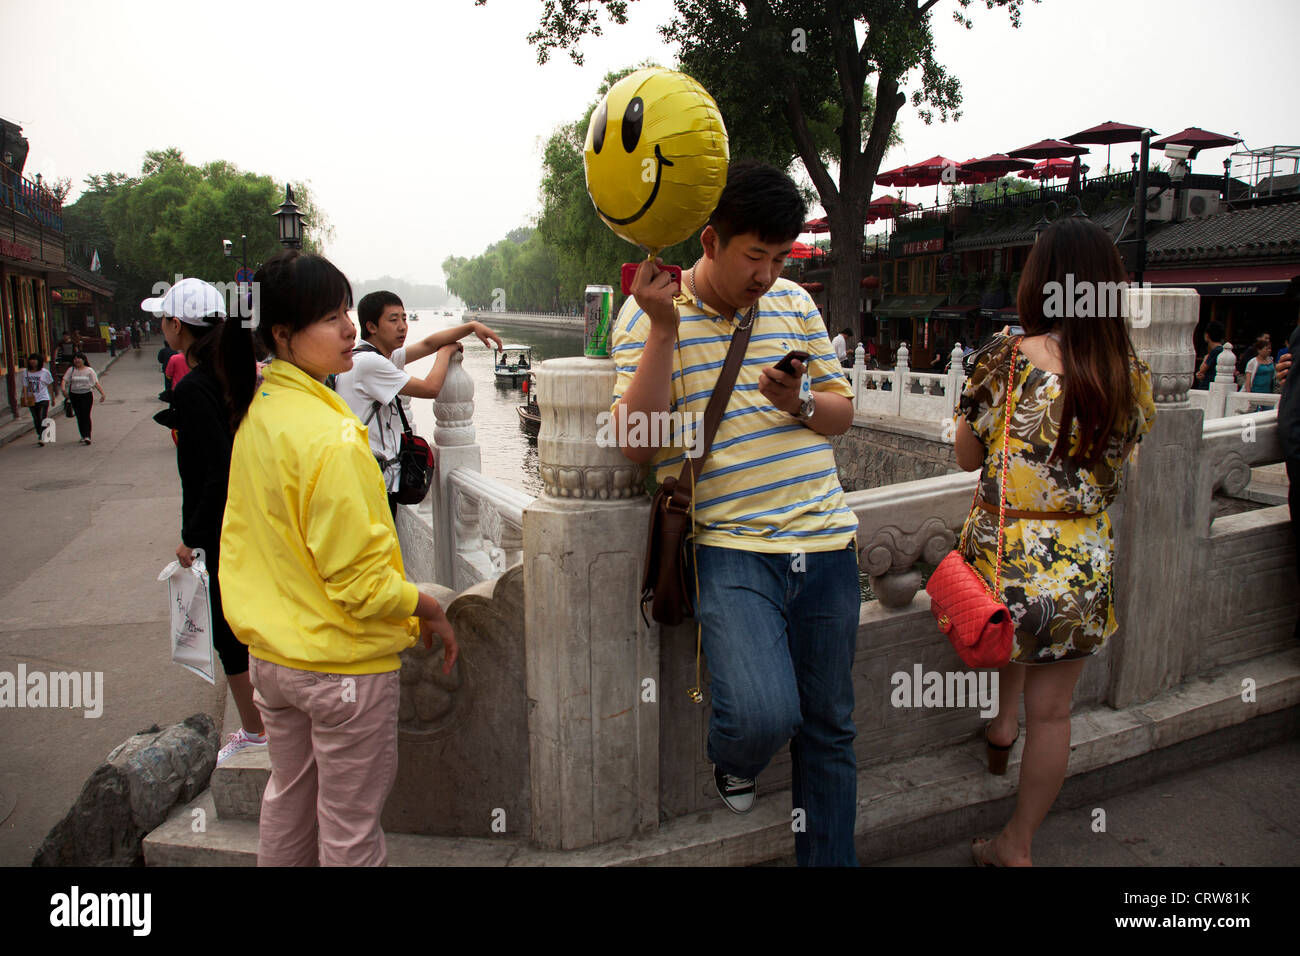 Standing on Yinding bridge holding a yellow smiley face balloon. Shichahai dates back to the Jin Dynasty. - Stock Image